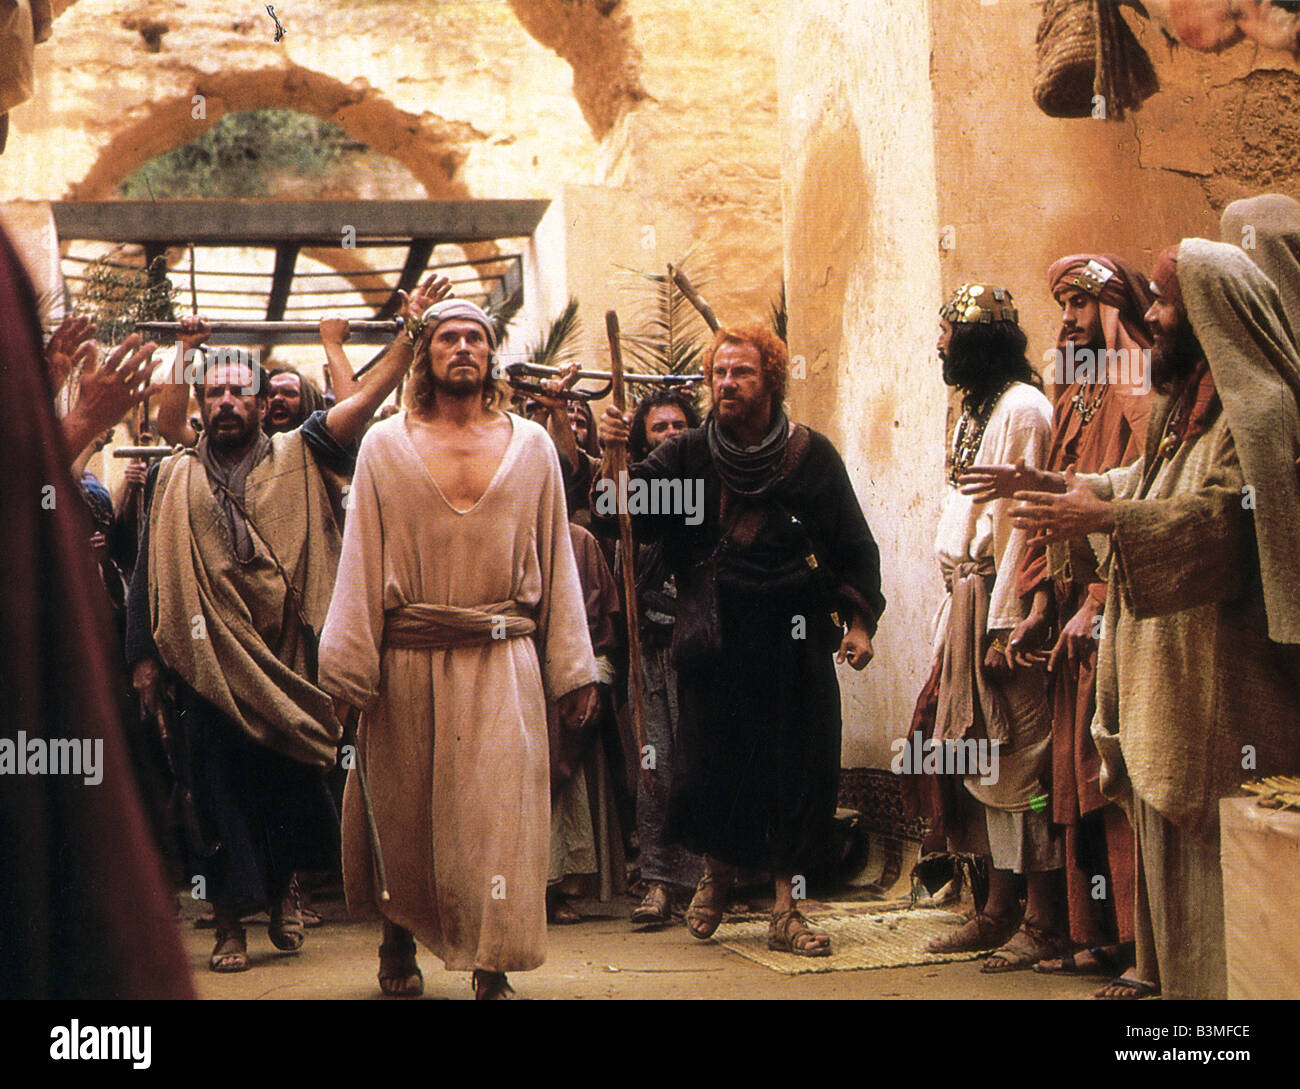 the last temptation of christ 1988 universal film with willem